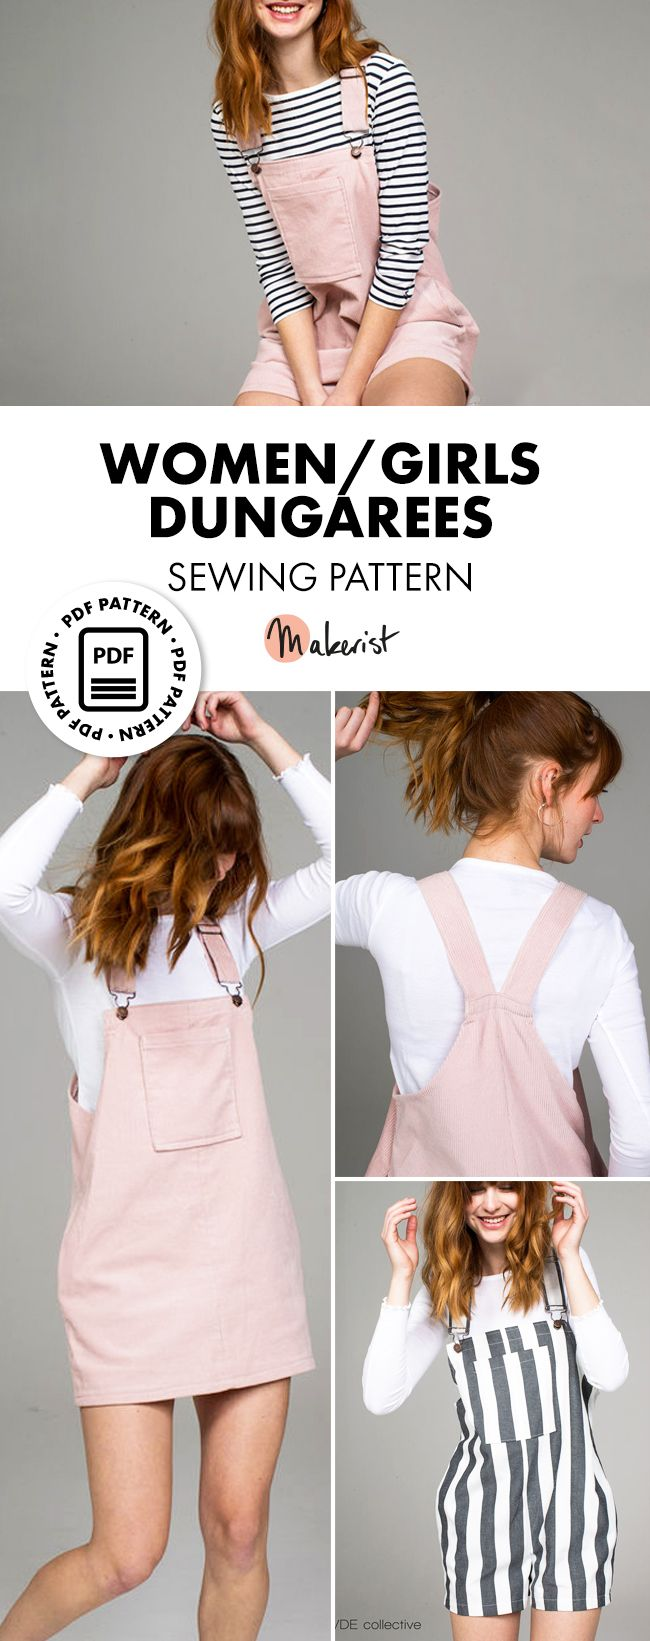 Women / Girls Dungarees & Dungaree dress sewing patterns UK 6-14